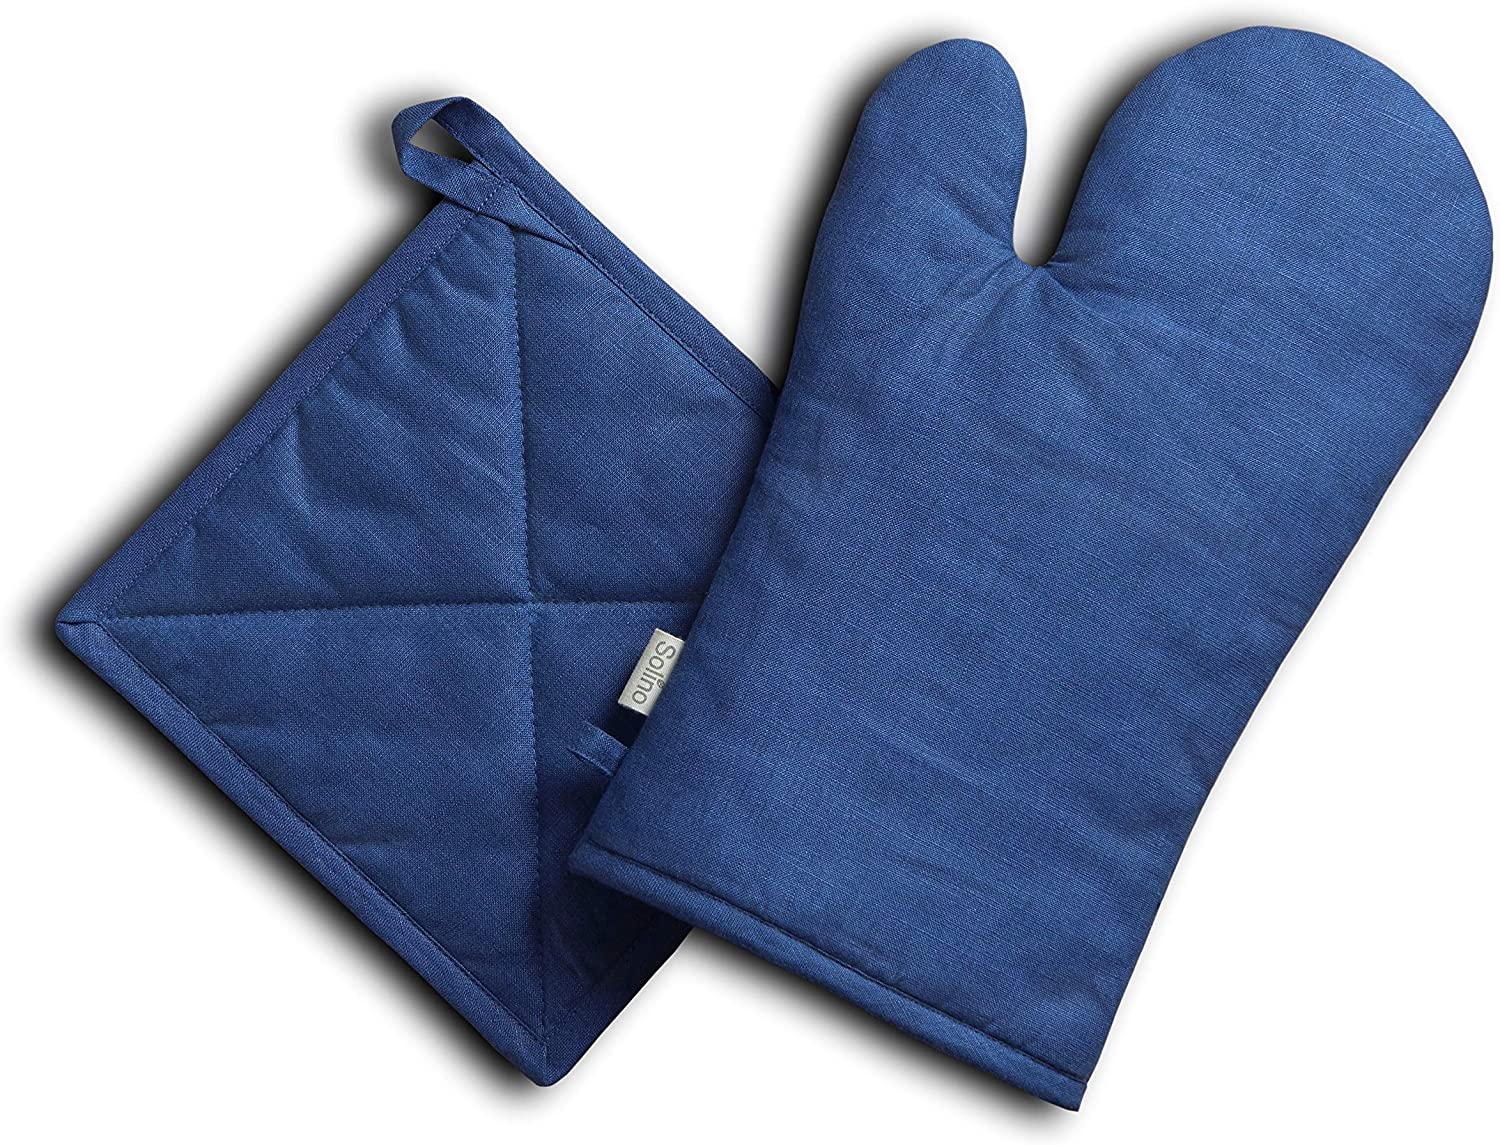 Solino Home Pure Linen Oven Mitt and Pot Holder Set – Blue, Oven Mitt (6.5 Inch x 12.5 Inch) and Pot Holder (8 Inch x 8 Inch)